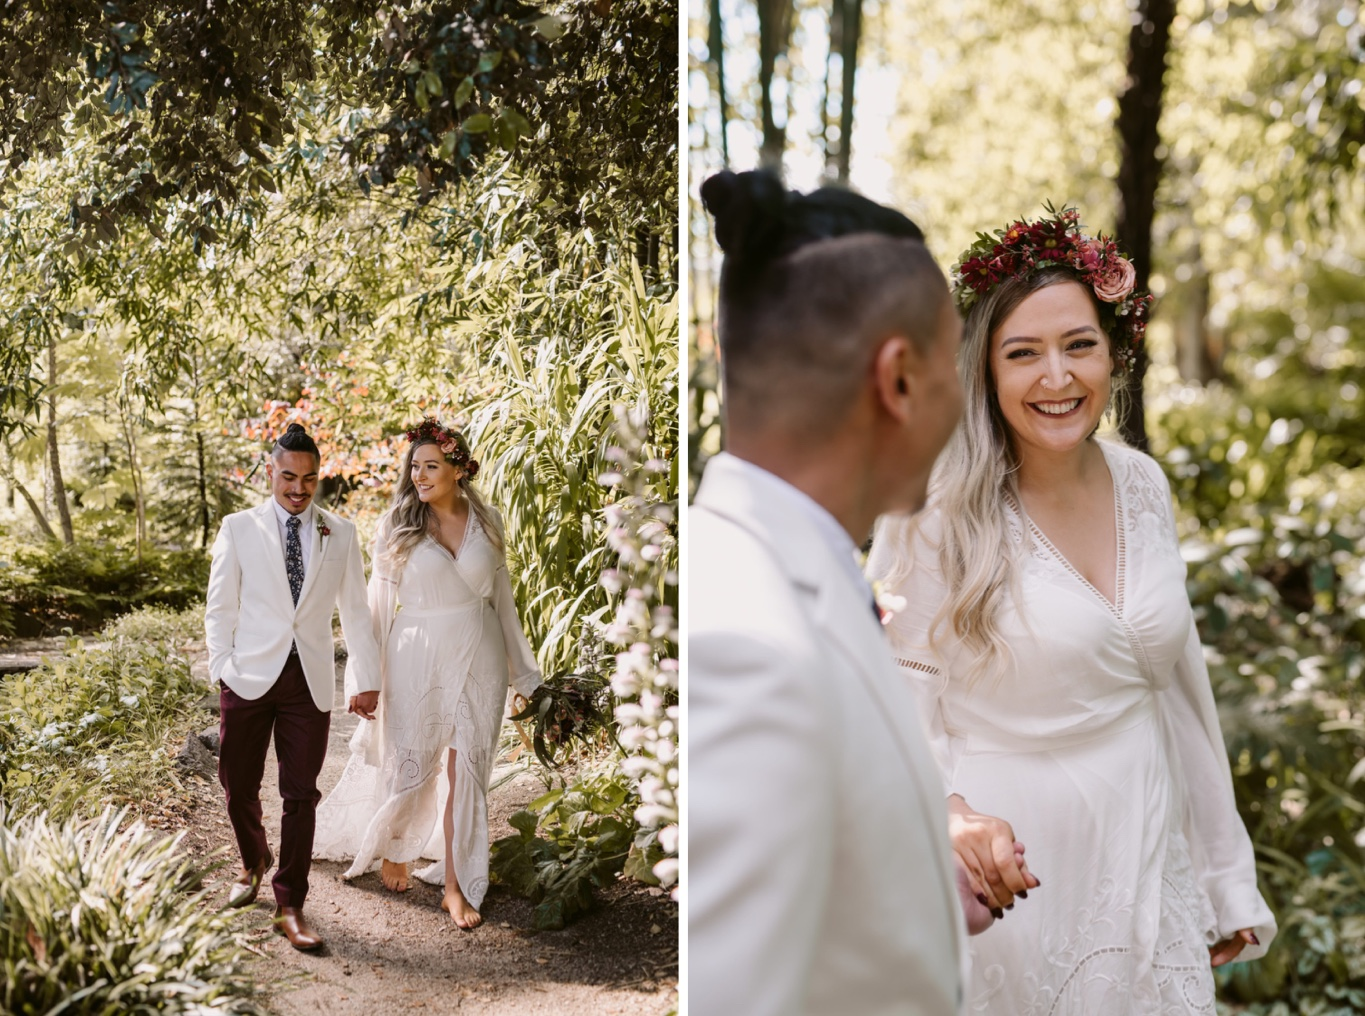 Gather and Tailor Melbourne Wedding Photography-168_Gather and Tailor Melbourne Wedding Photography-170.jpg